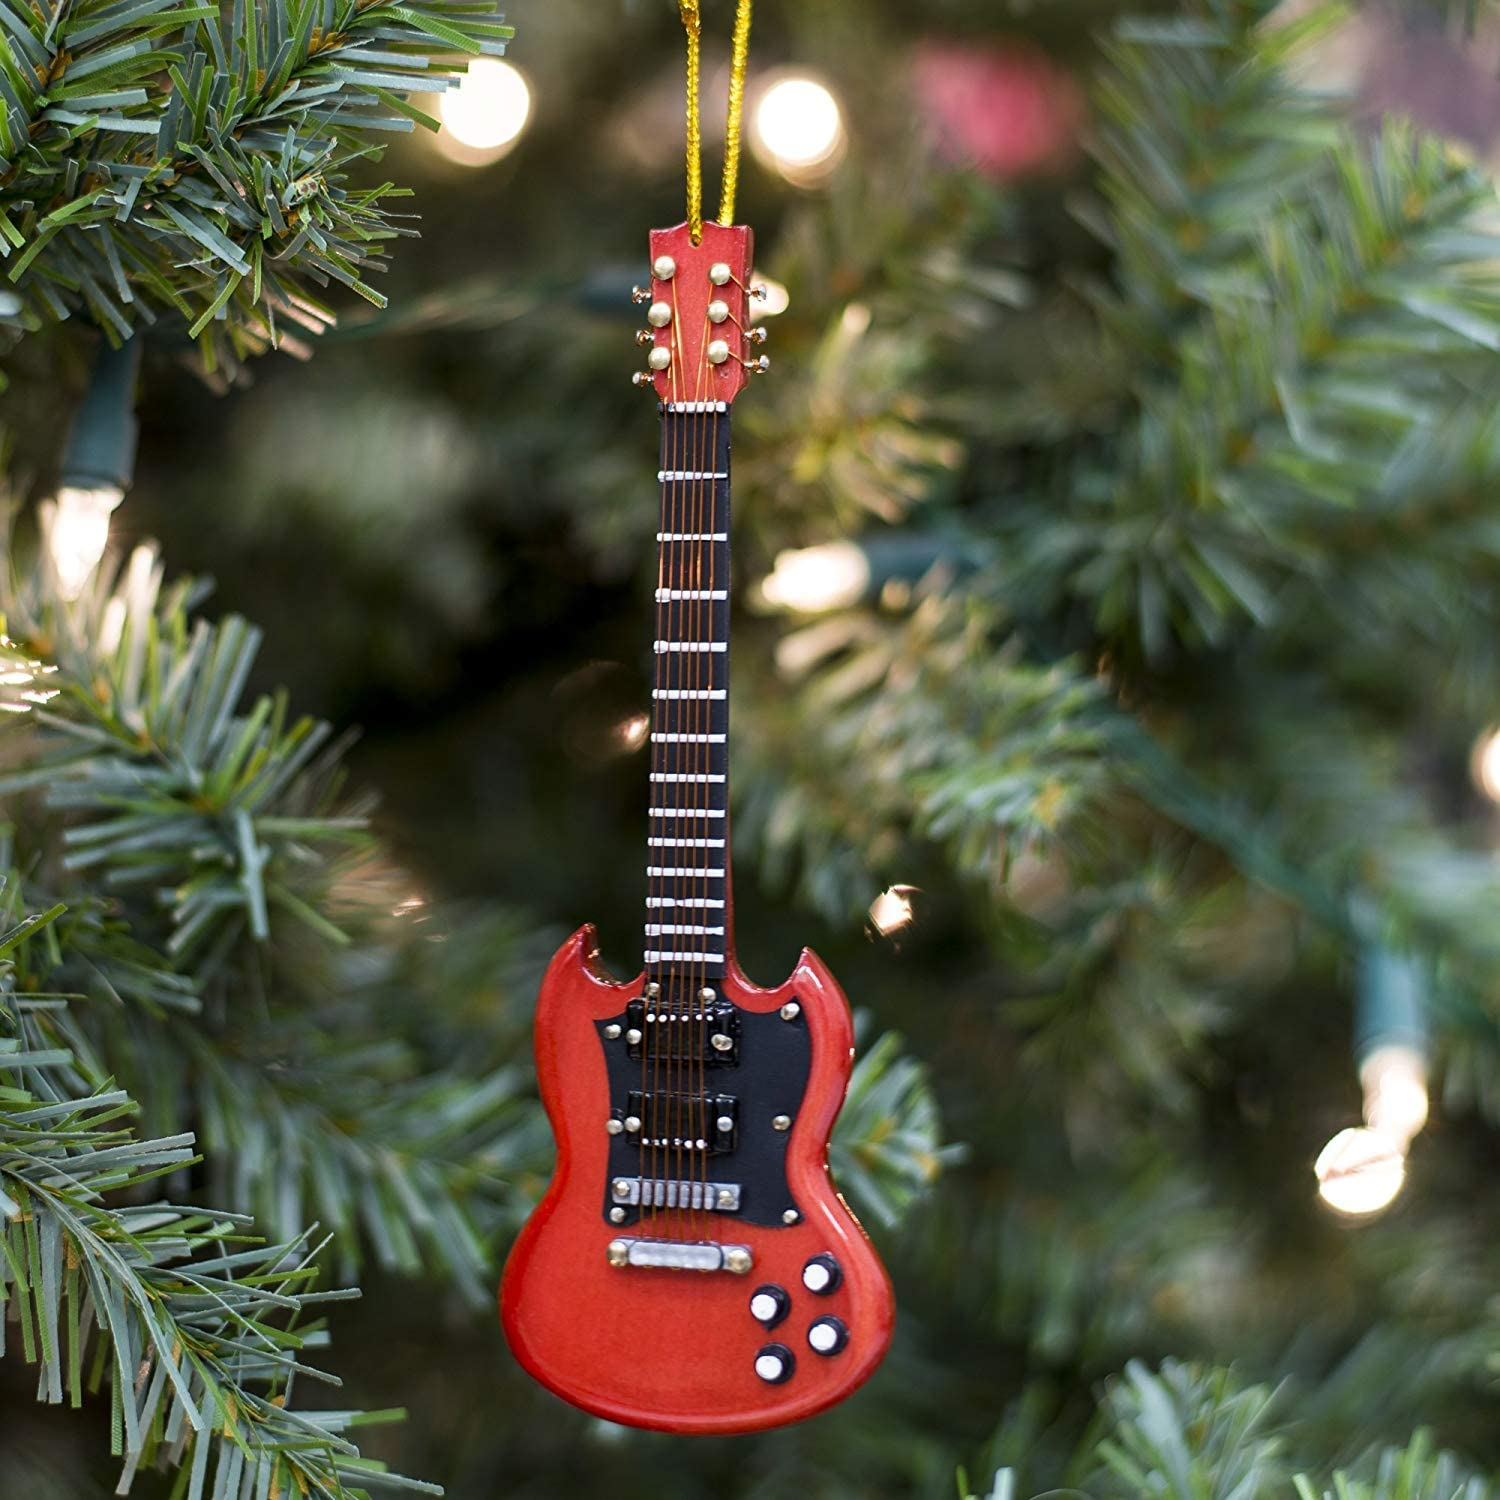 Broadway Gift Red Electric Guitar with Two Horns Music Instrument Replica Ornament Size 5 inch